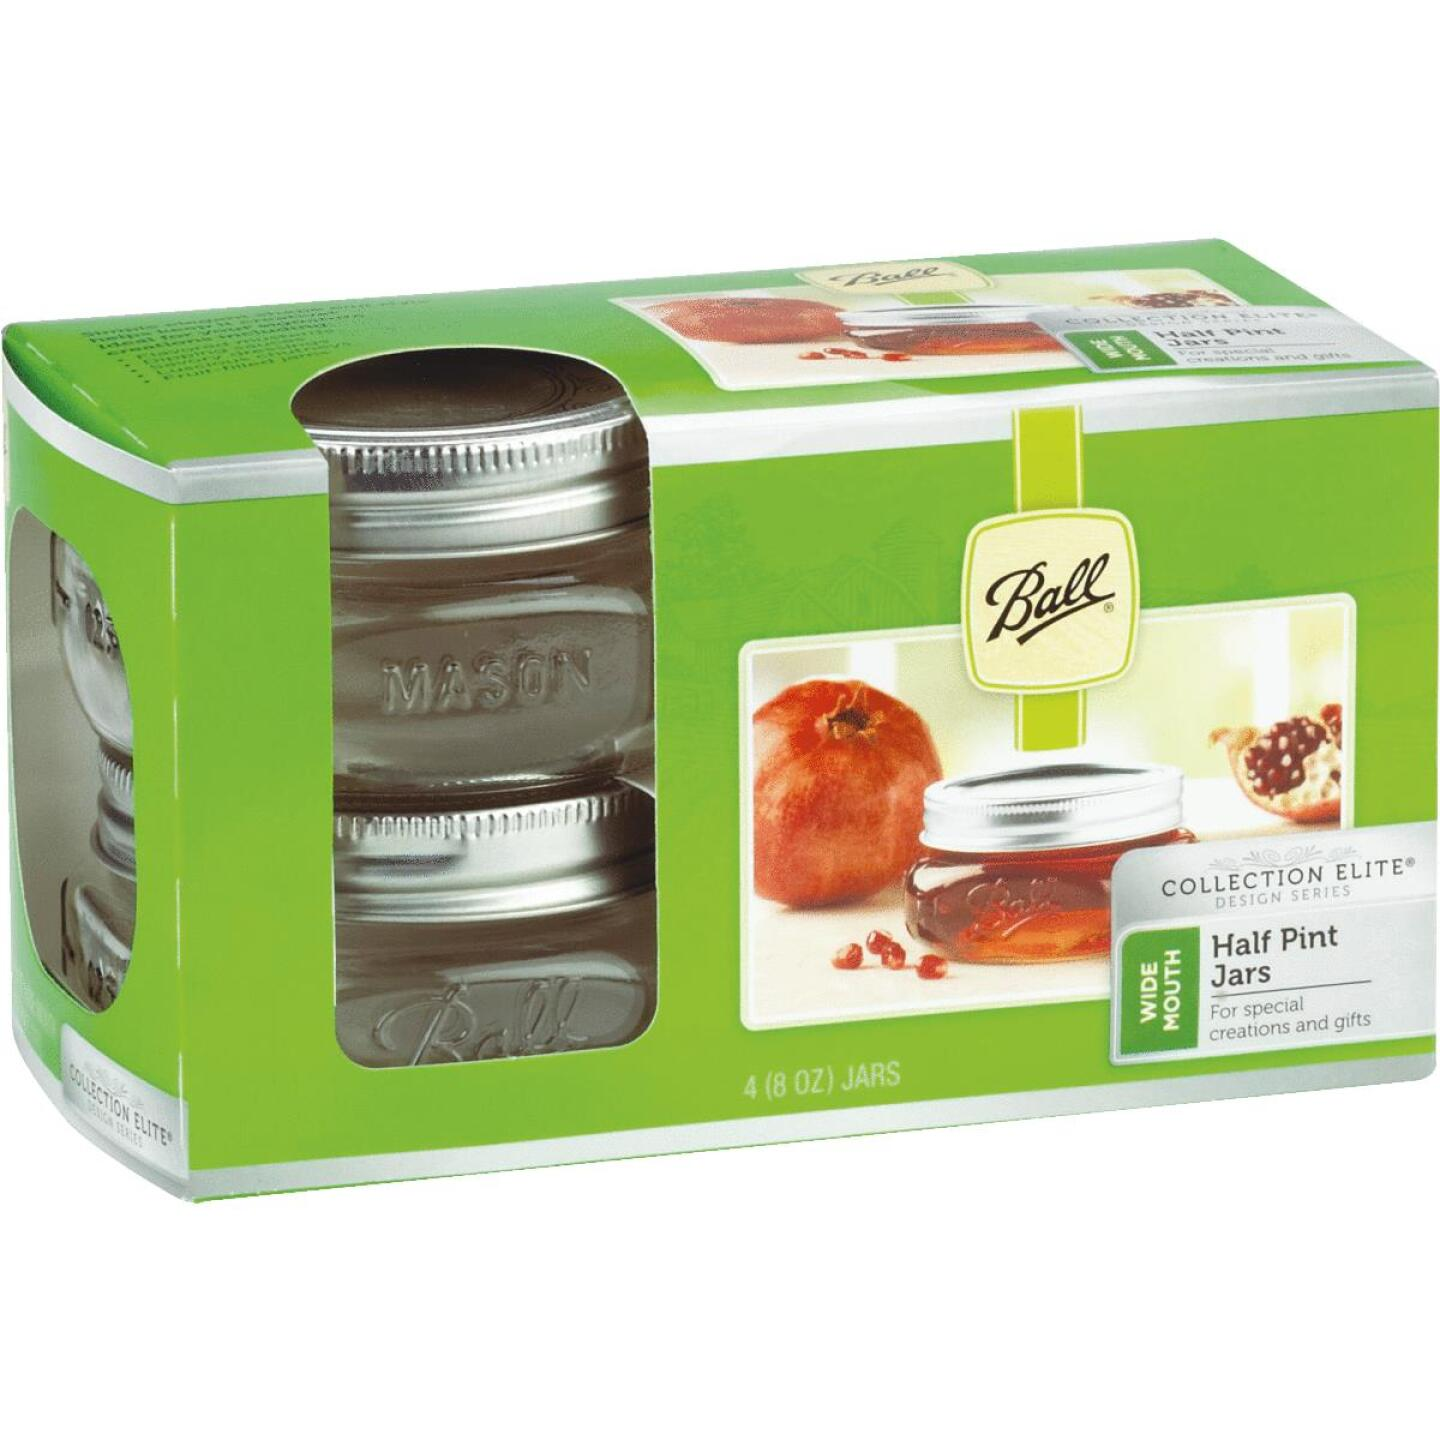 Ball Collection Elite 1/2 Pint Wide Mouth Mason Canning Jar (4-Count) Image 1